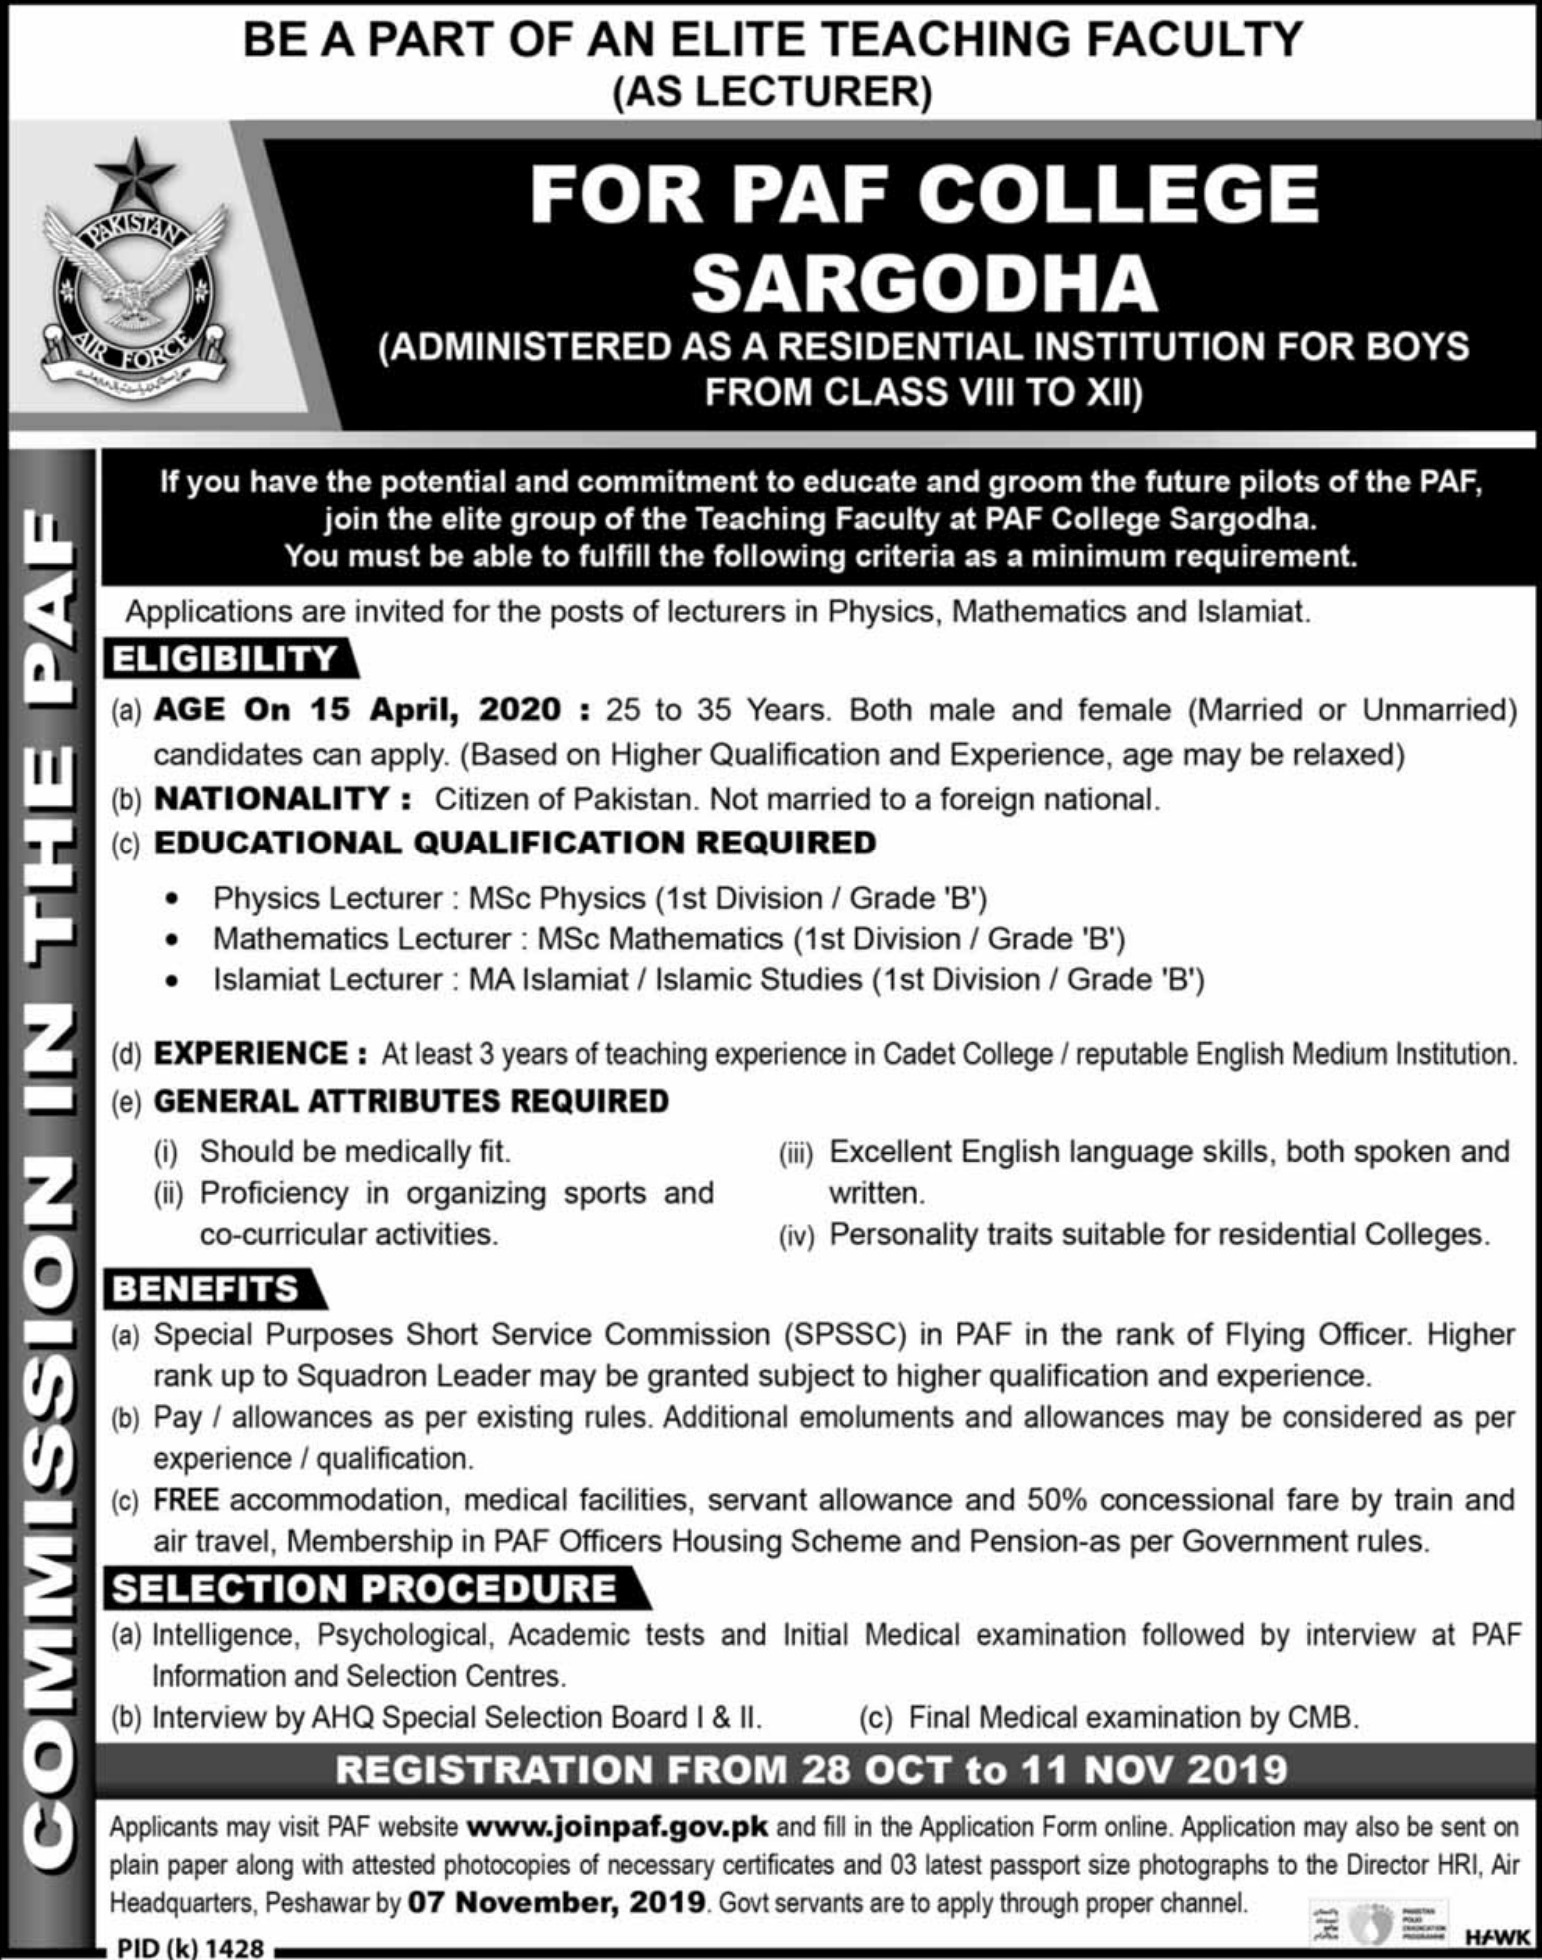 PAF College Sargodha Jobs 2019